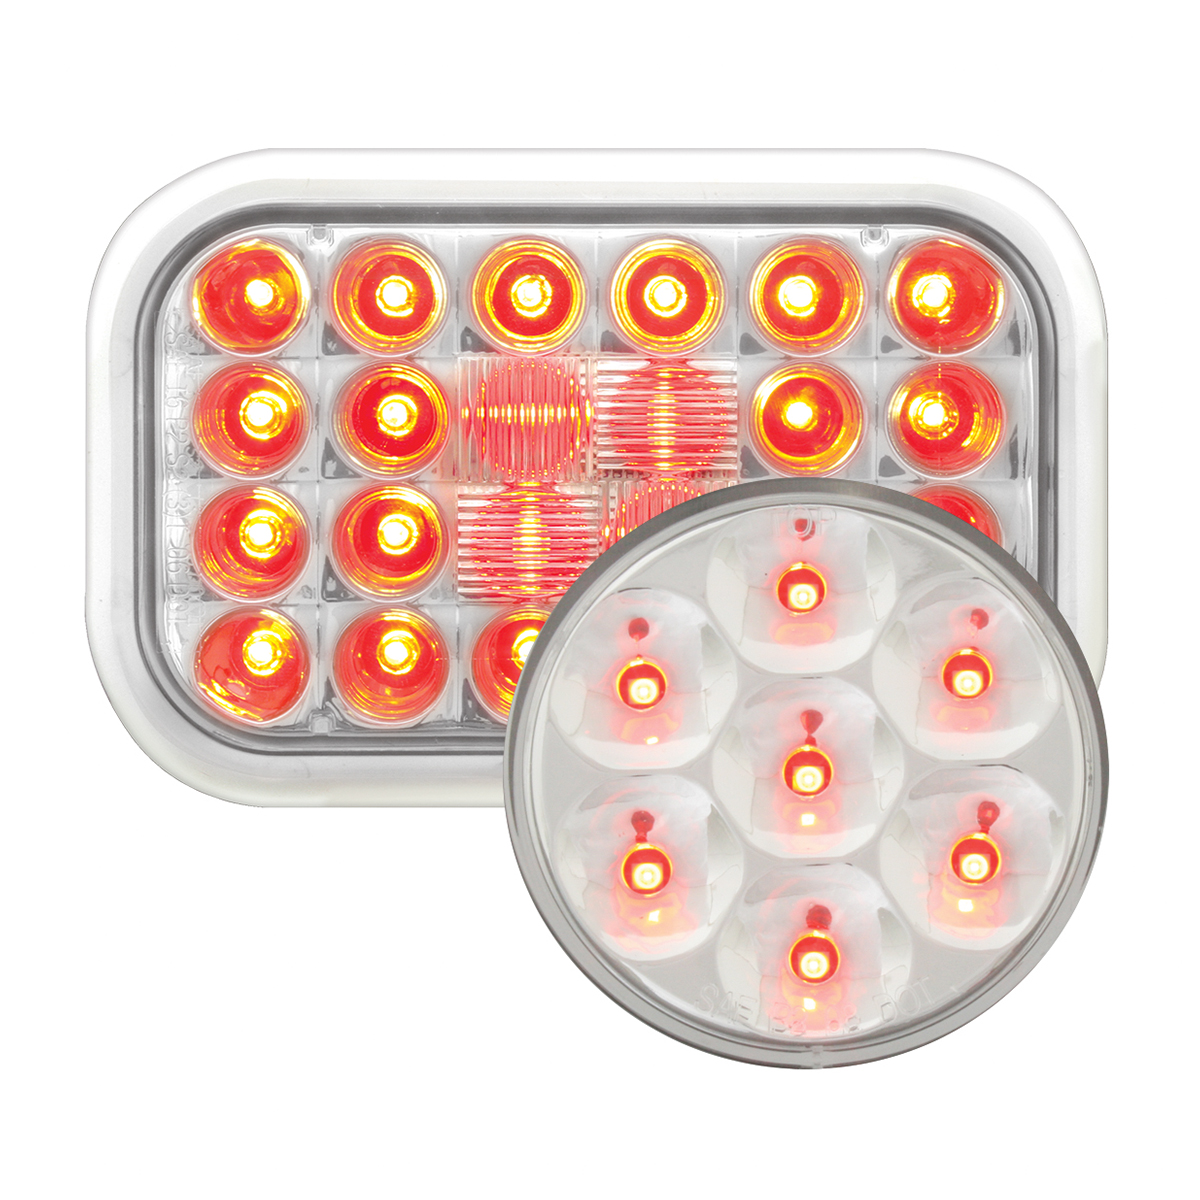 #77183/#76543 Pearl LED Flat Light - Red/Clear